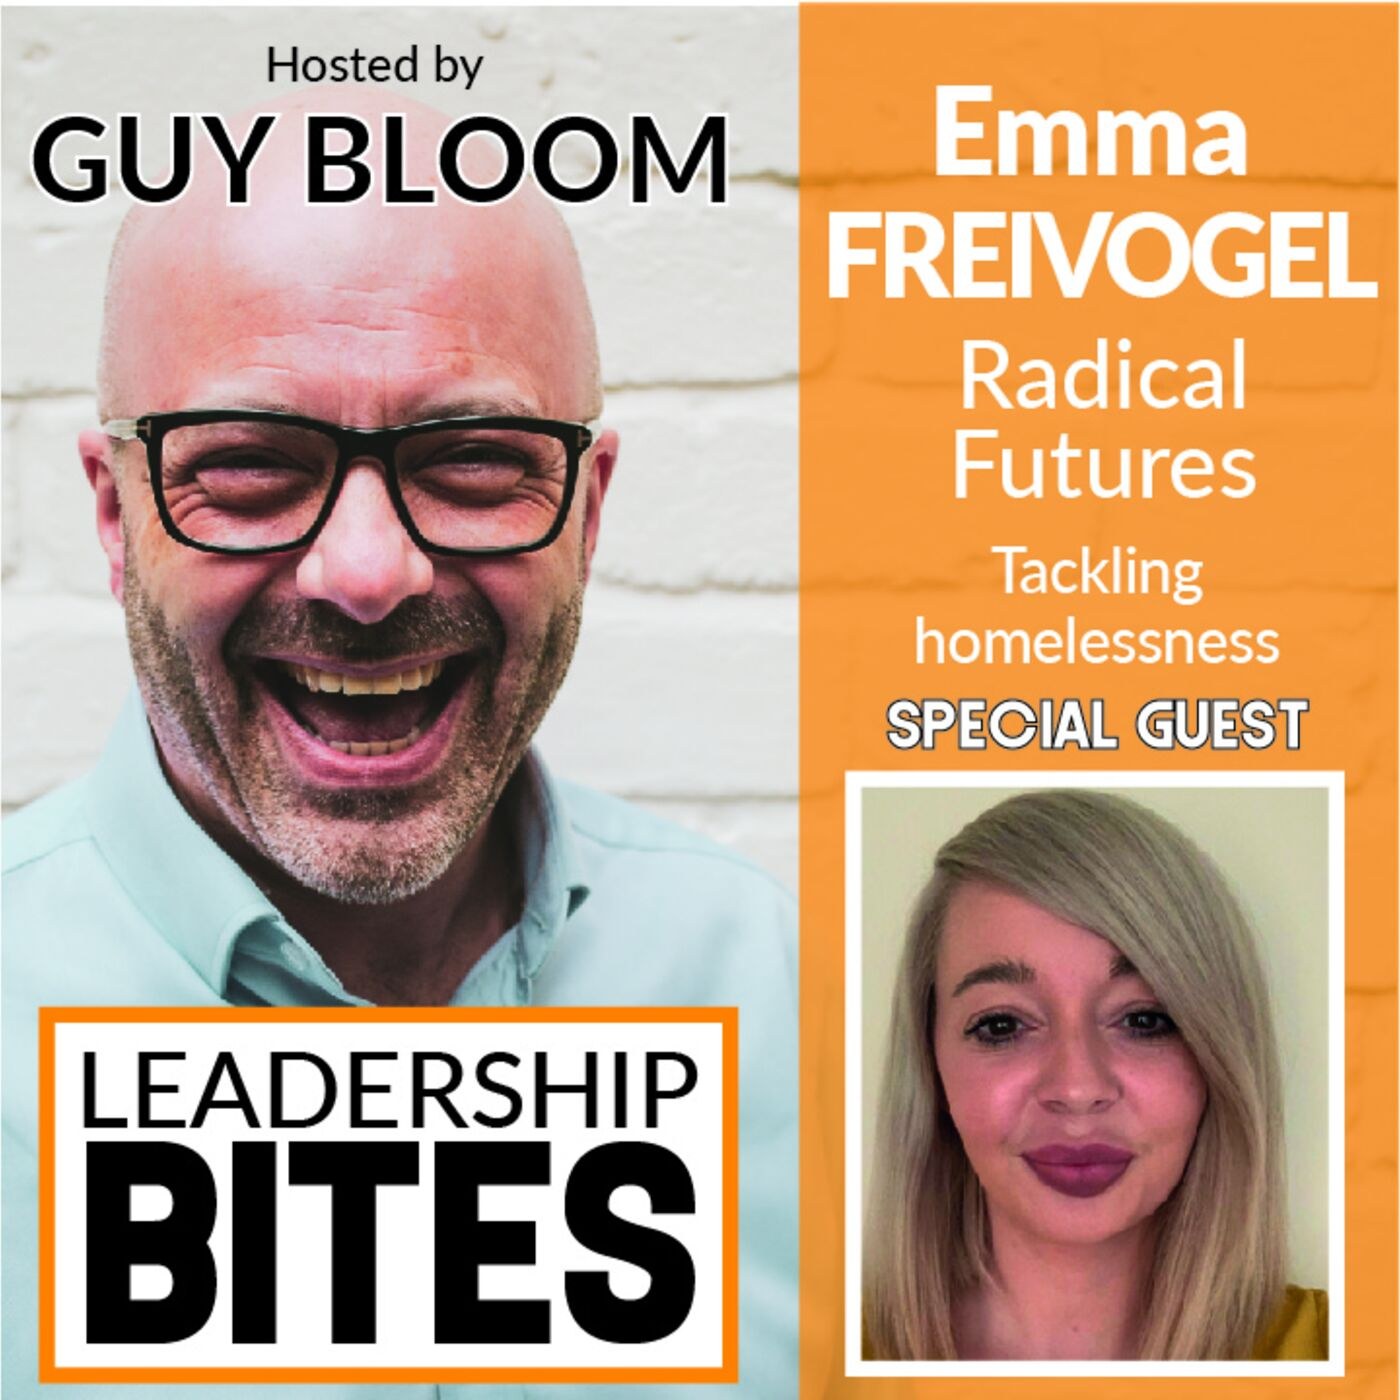 Emma Freivogel, Radical Recruit, Crowdfunding to tackle homelessness, one person and one job at a time